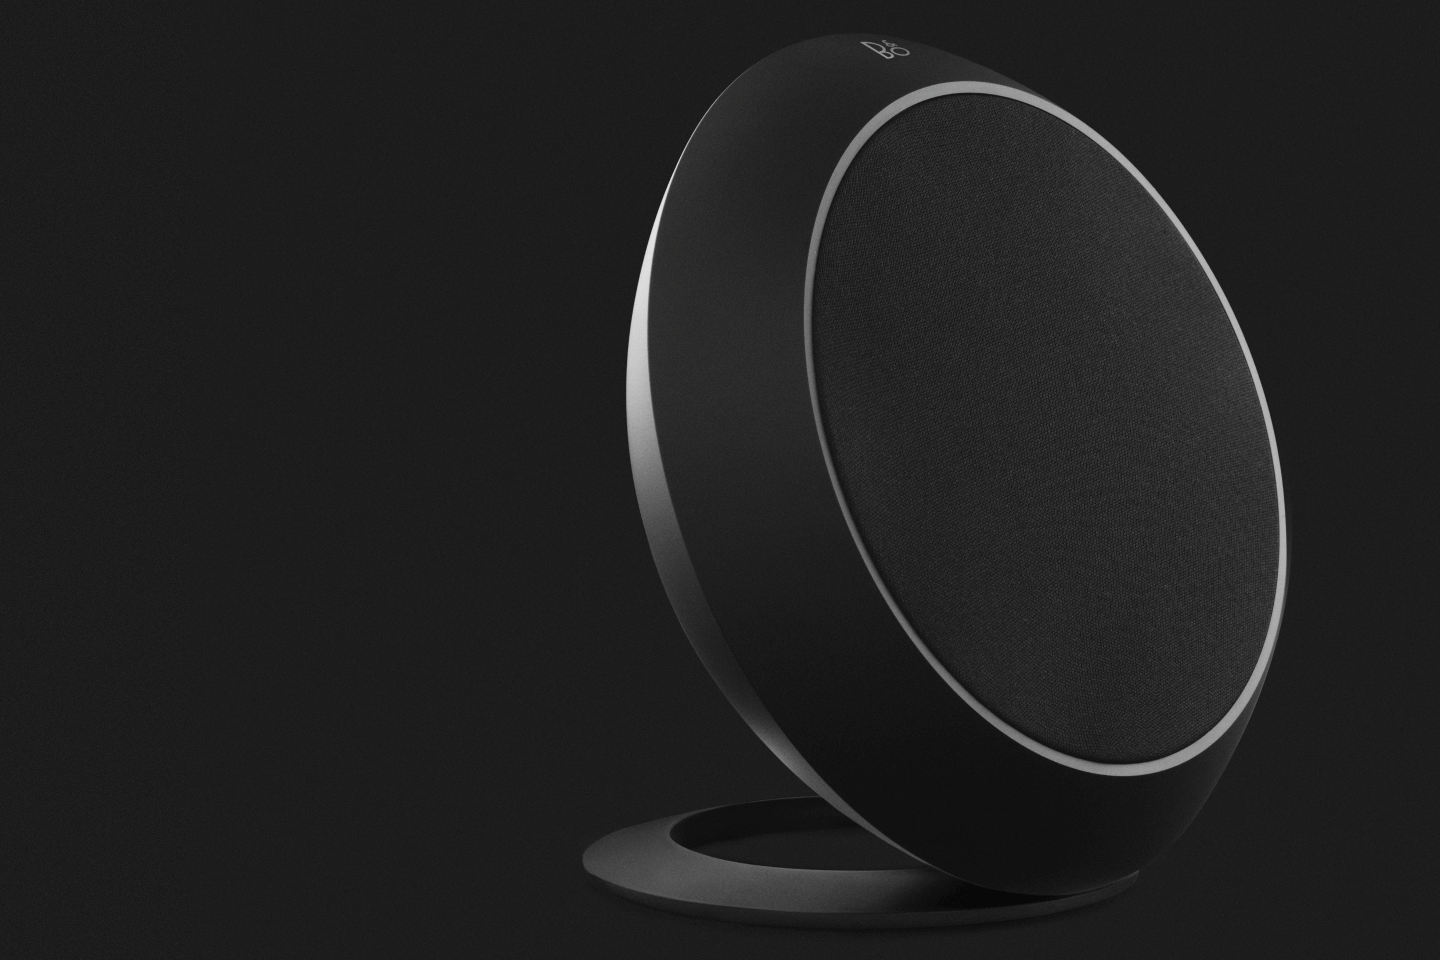 BeoPlay S8 - real aktive speaker stereo- system.